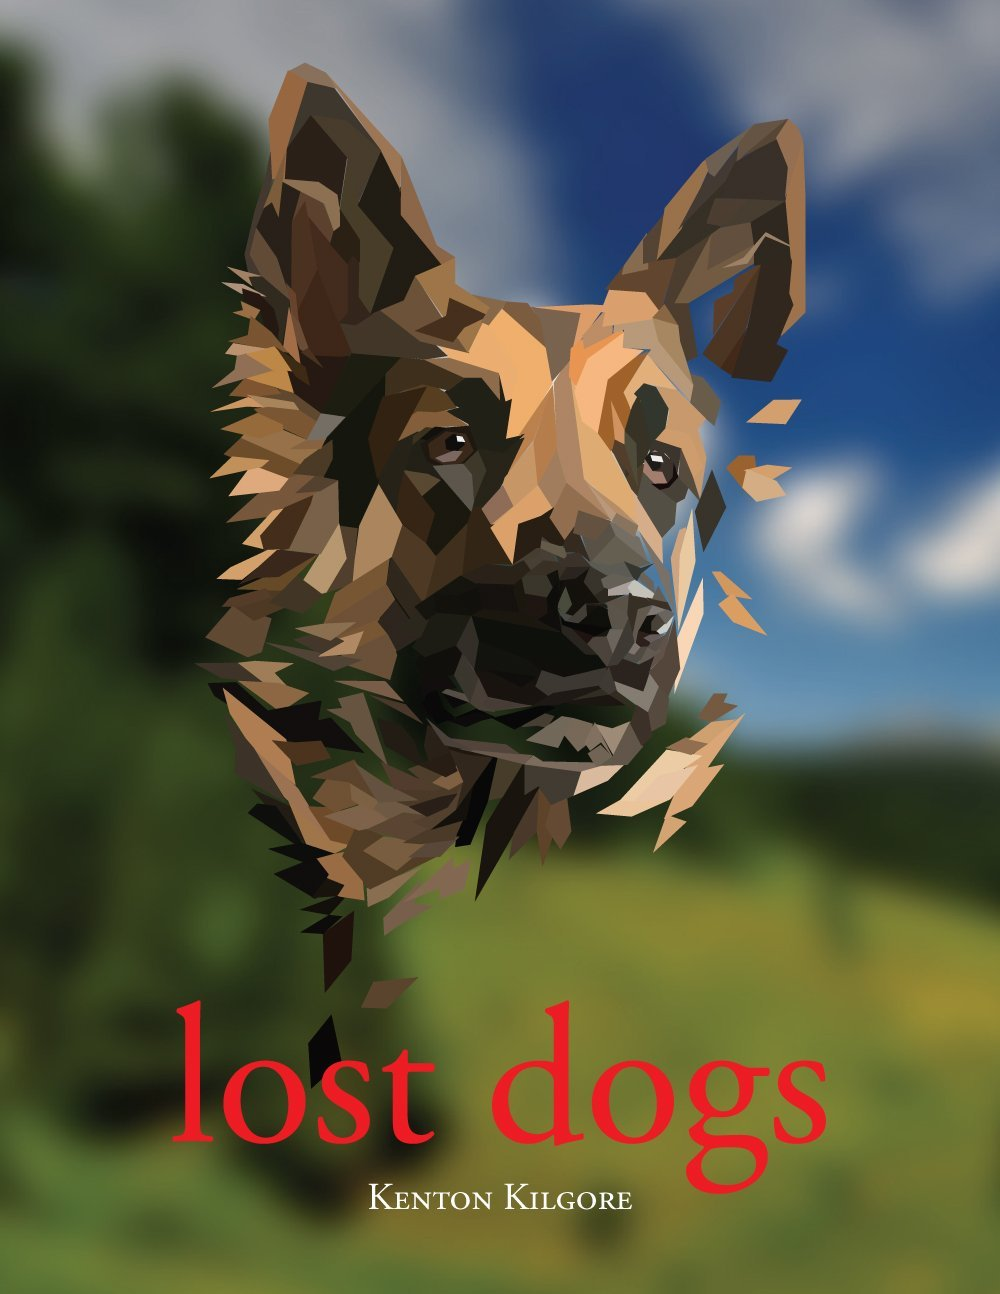 Lost Dogs by Kenton Kilgore